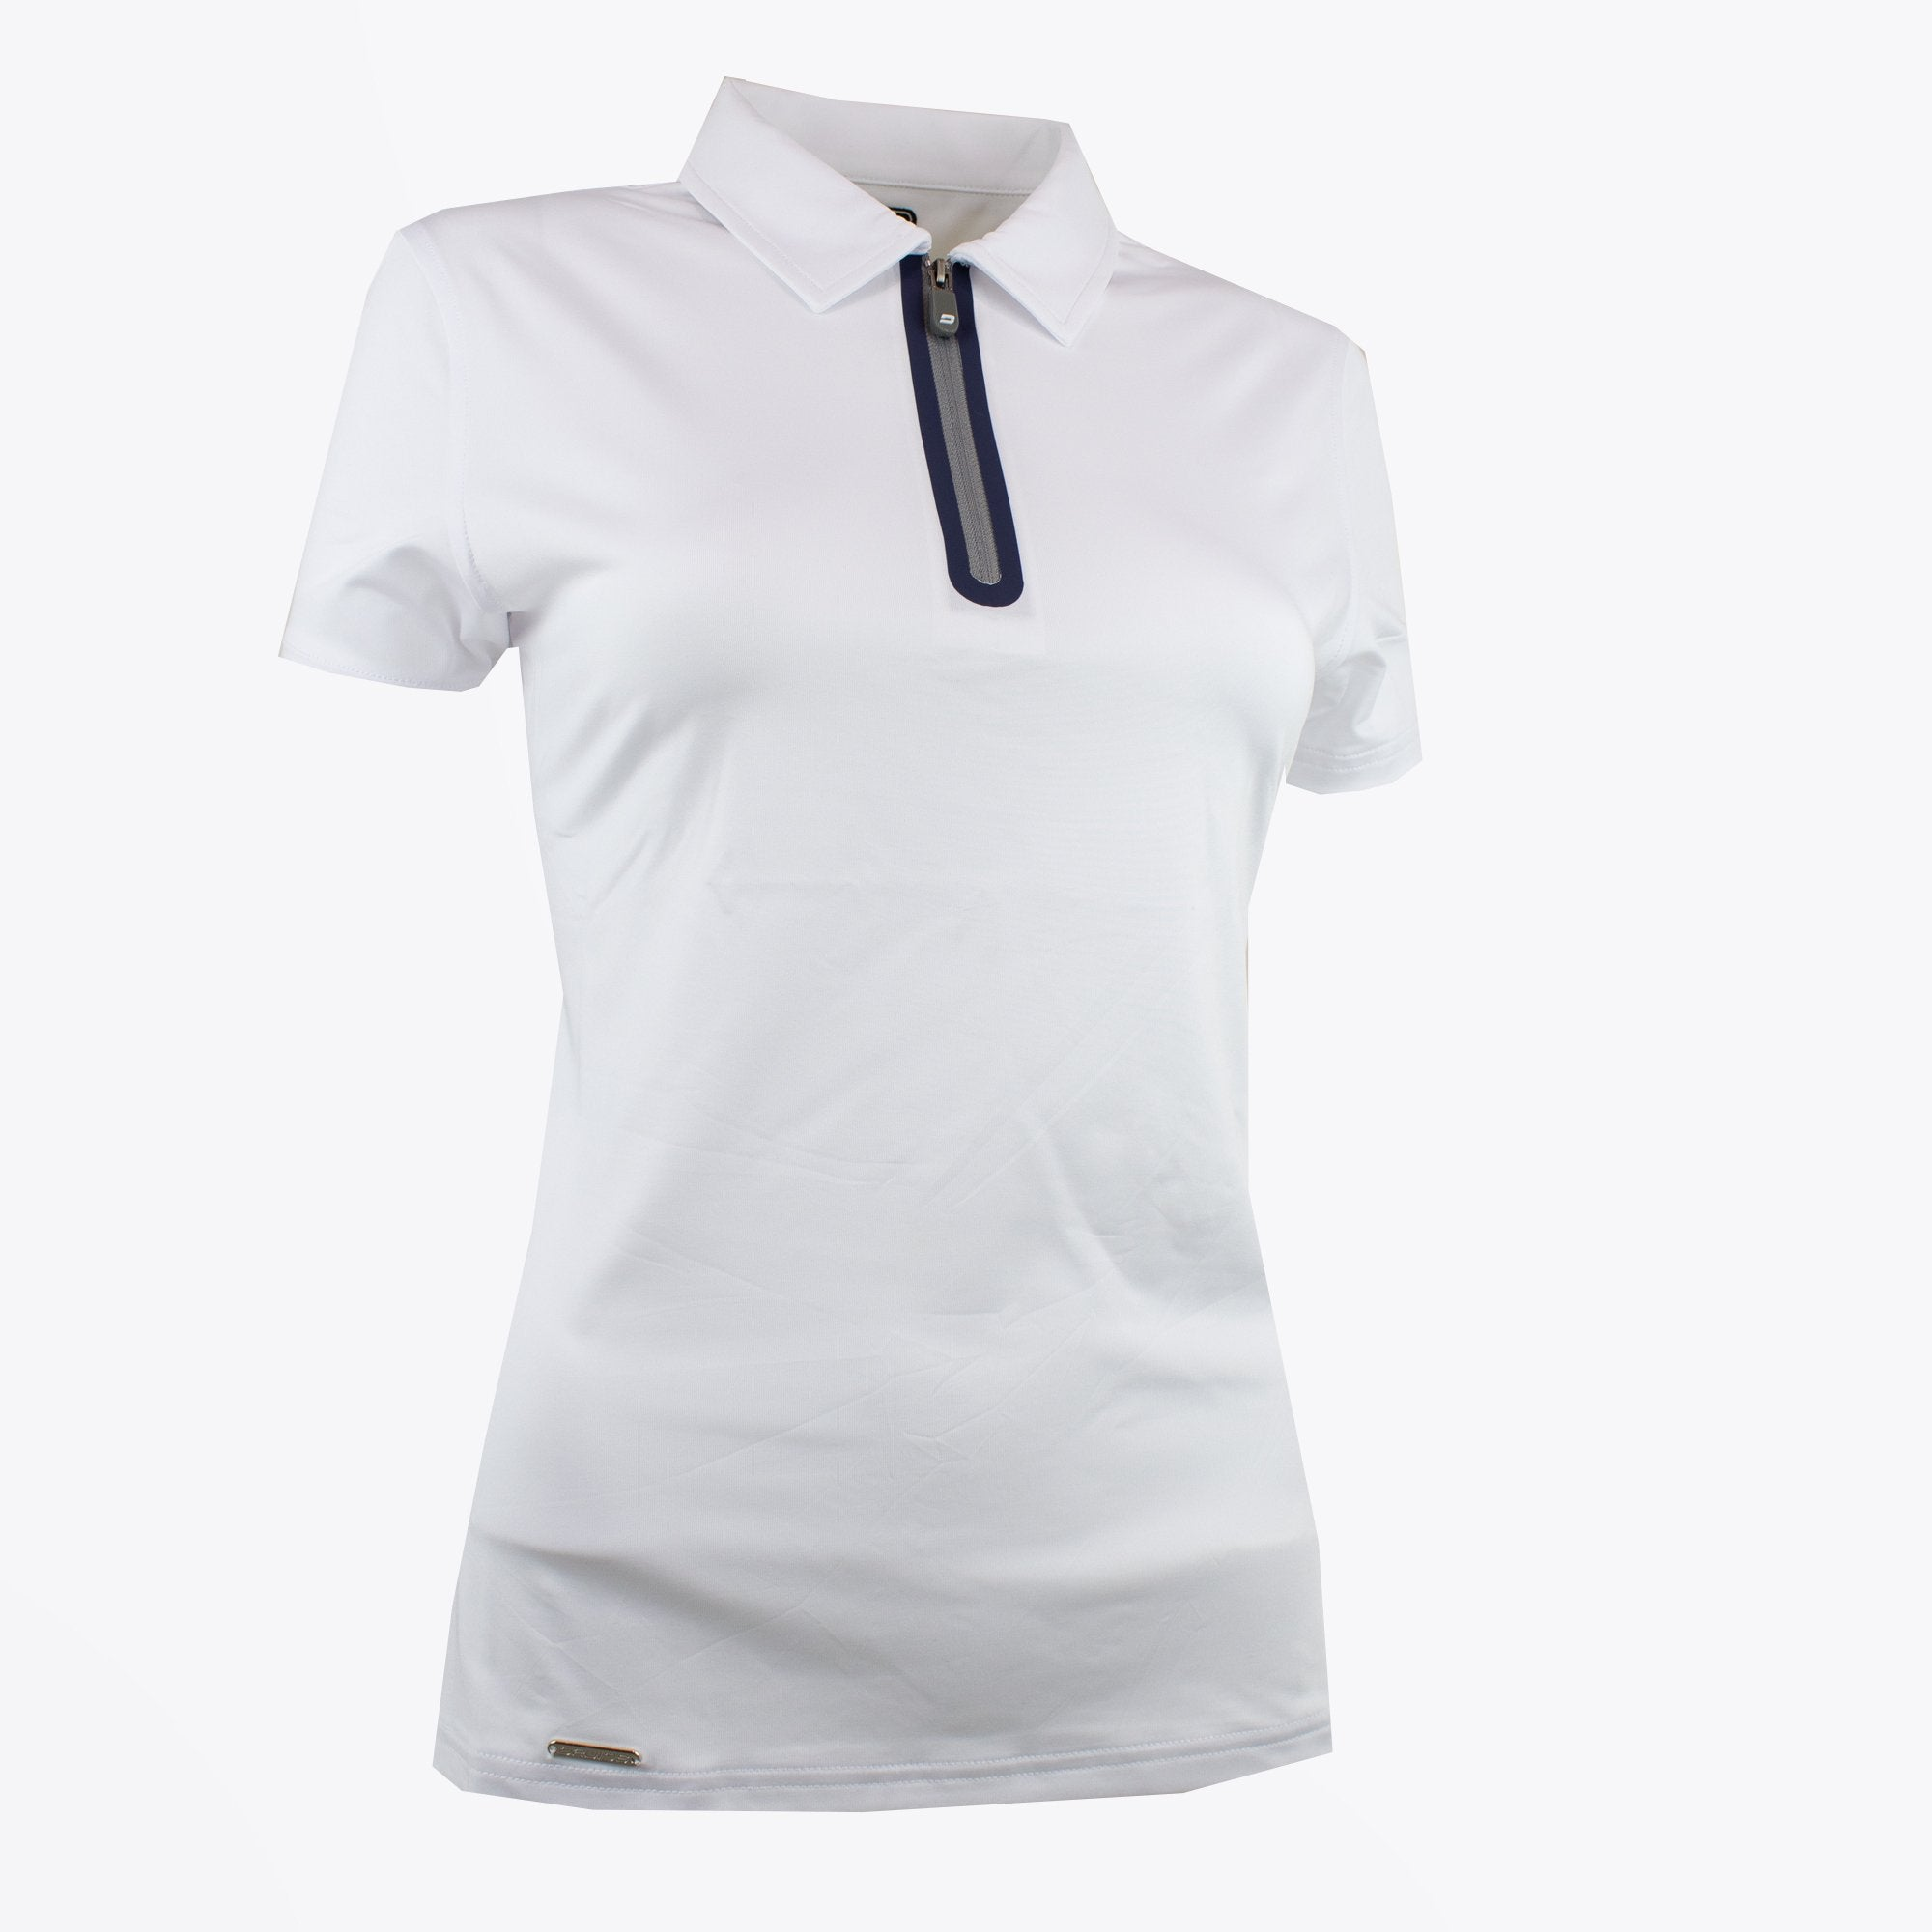 Druids Golf - Ladies Premium Line Polo (White)